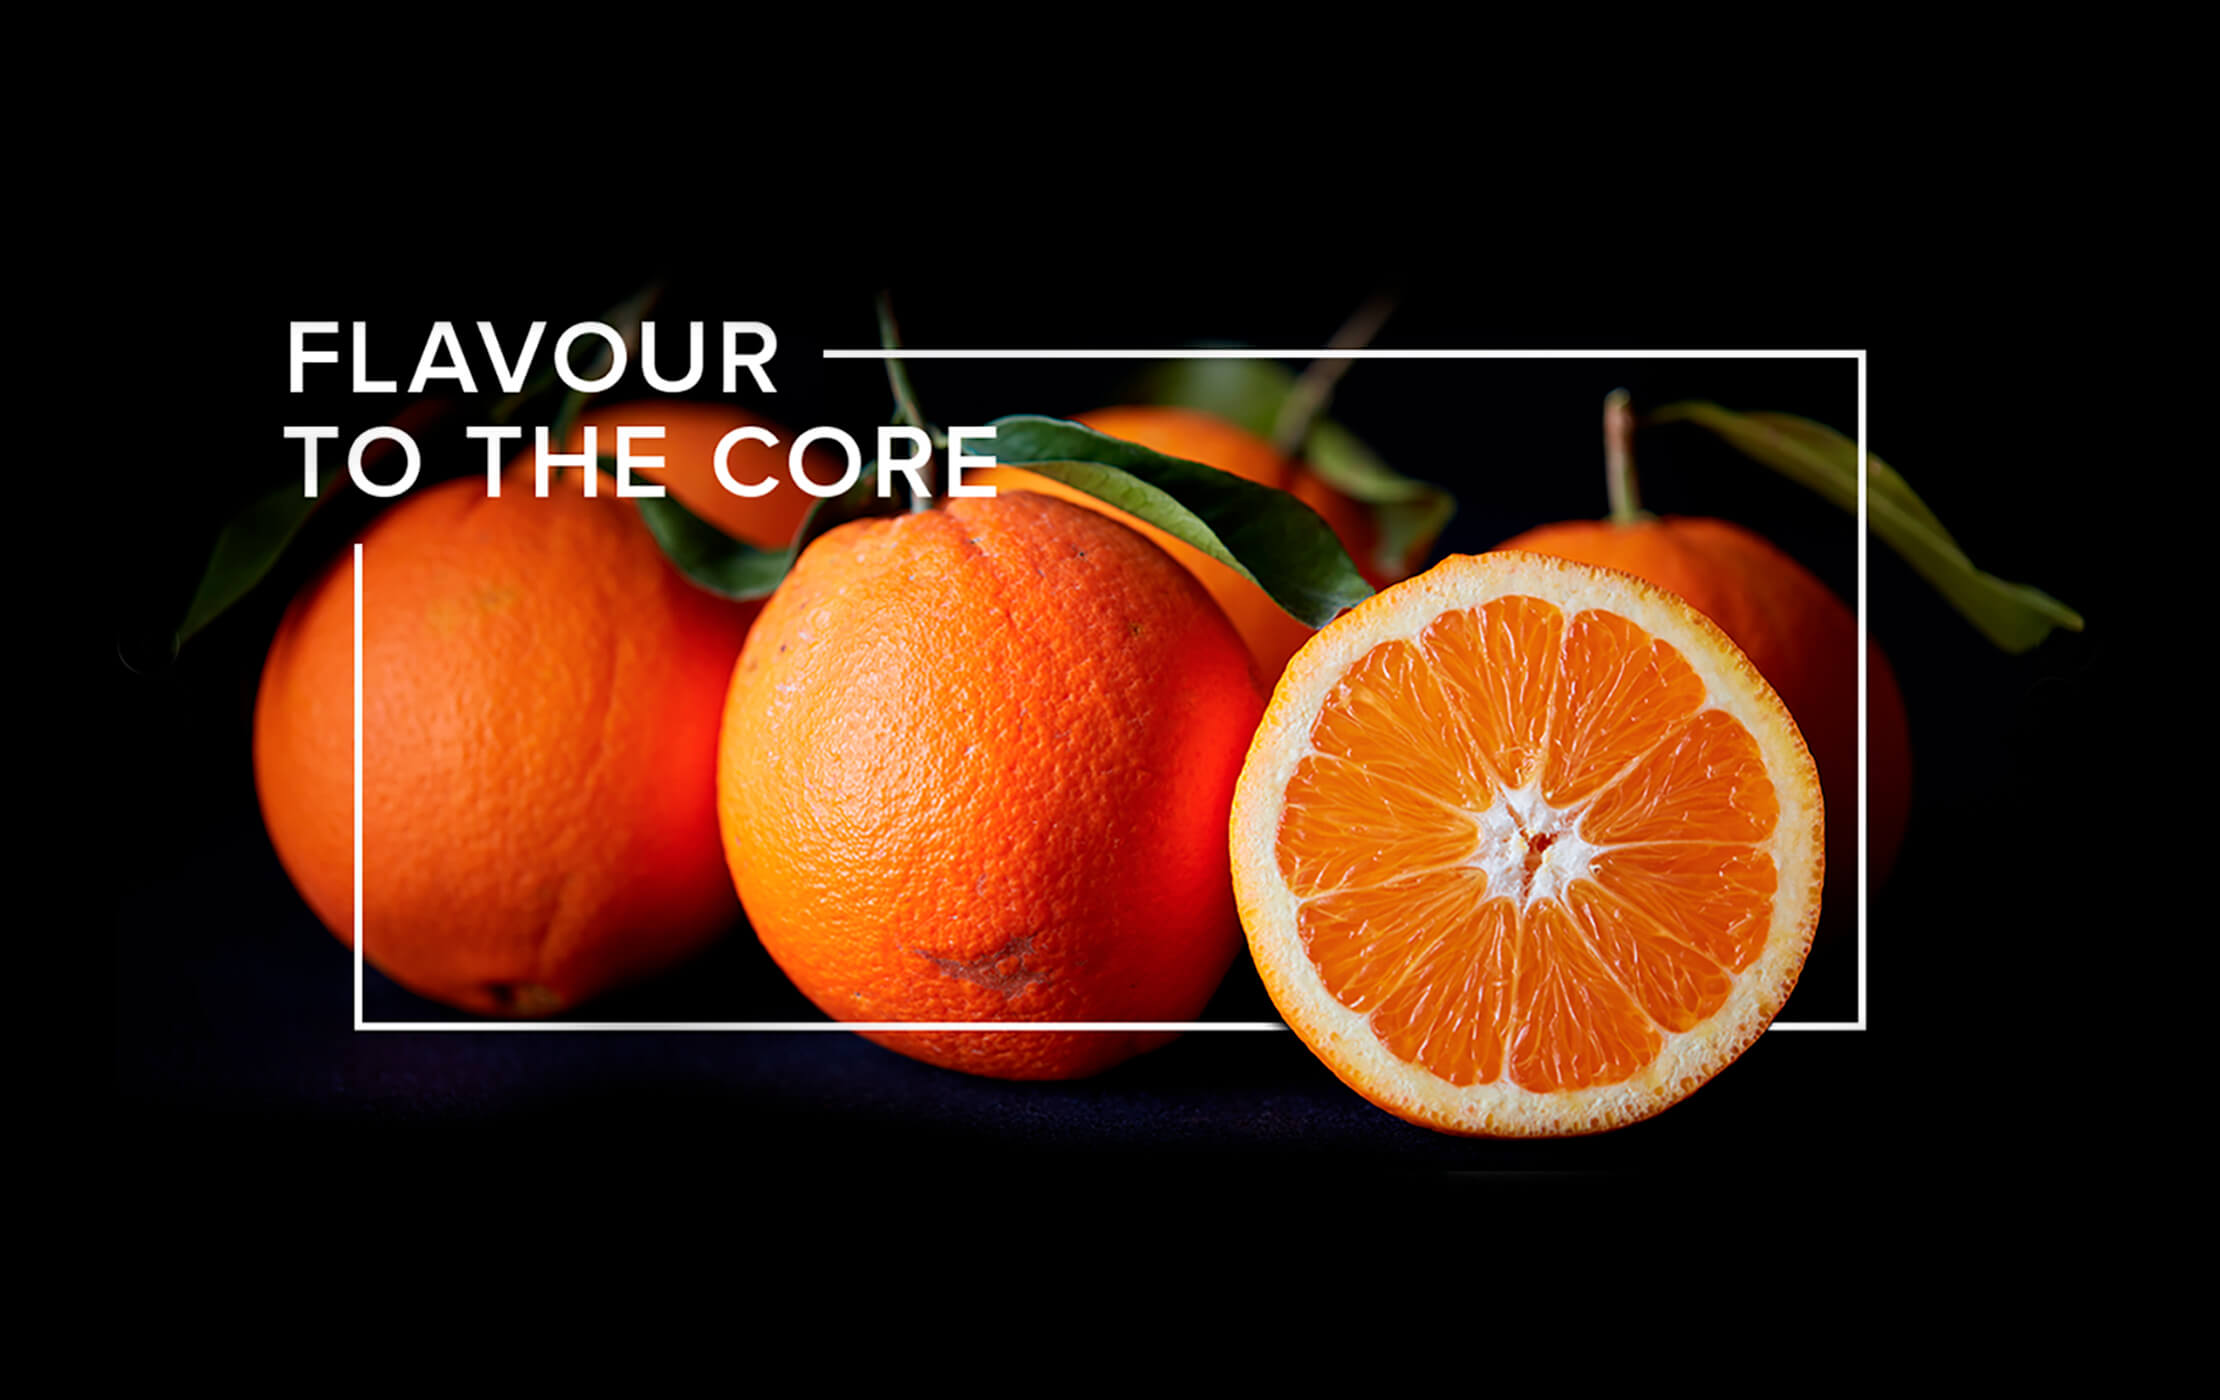 White 'Flavour to the Core' heading and rectangular frame on a black background, intertwined with oranges